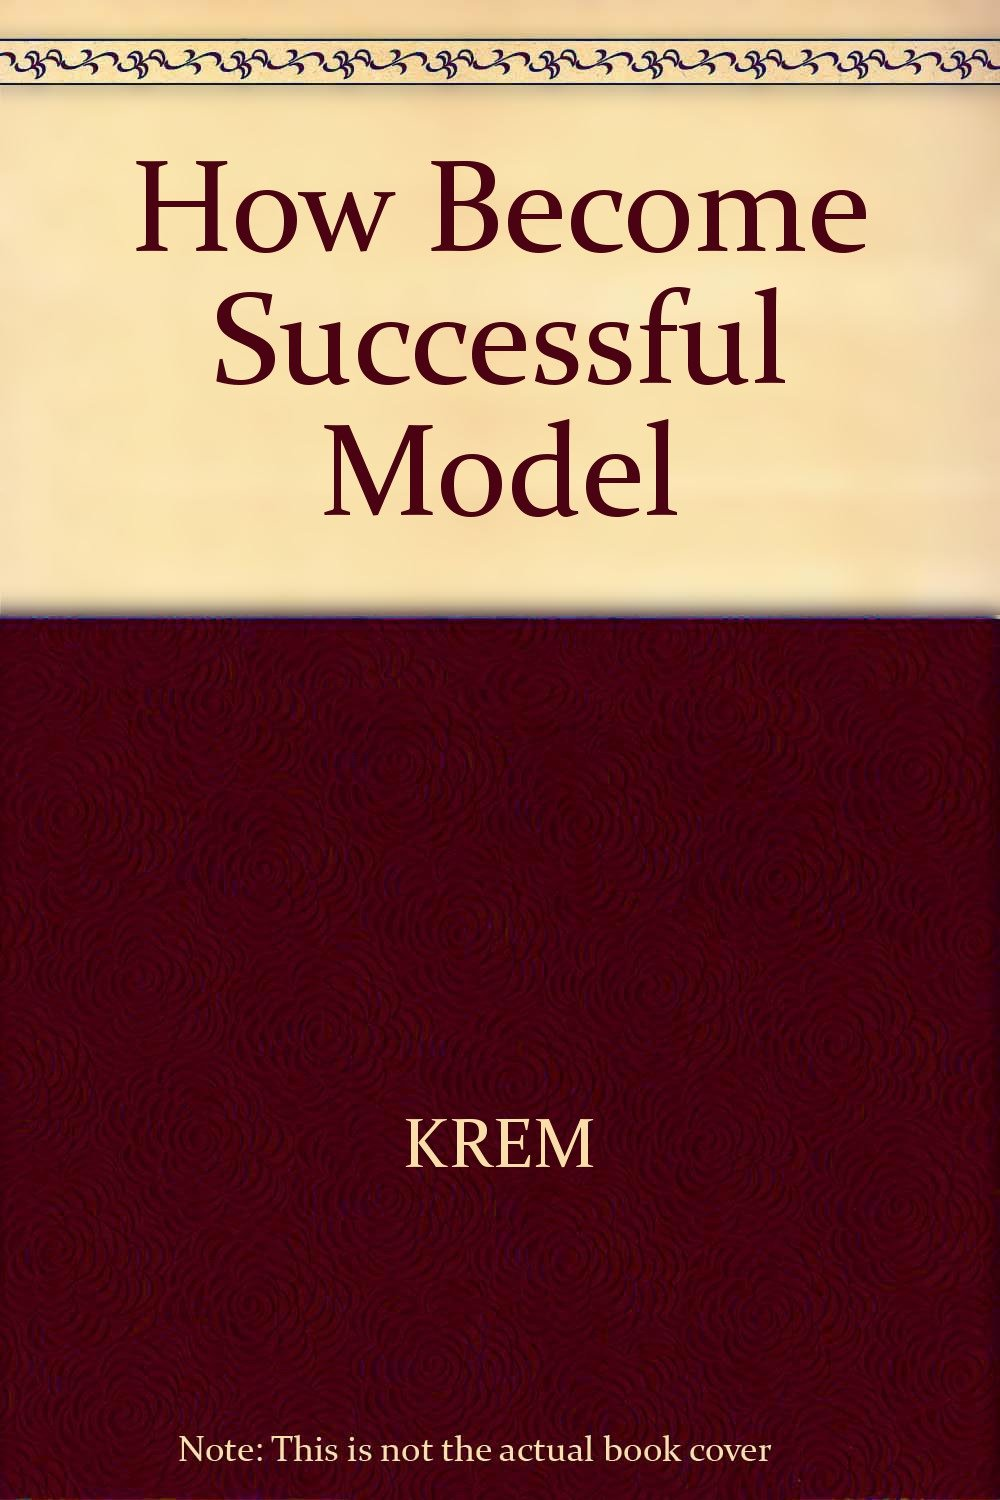 How Become Successful Model